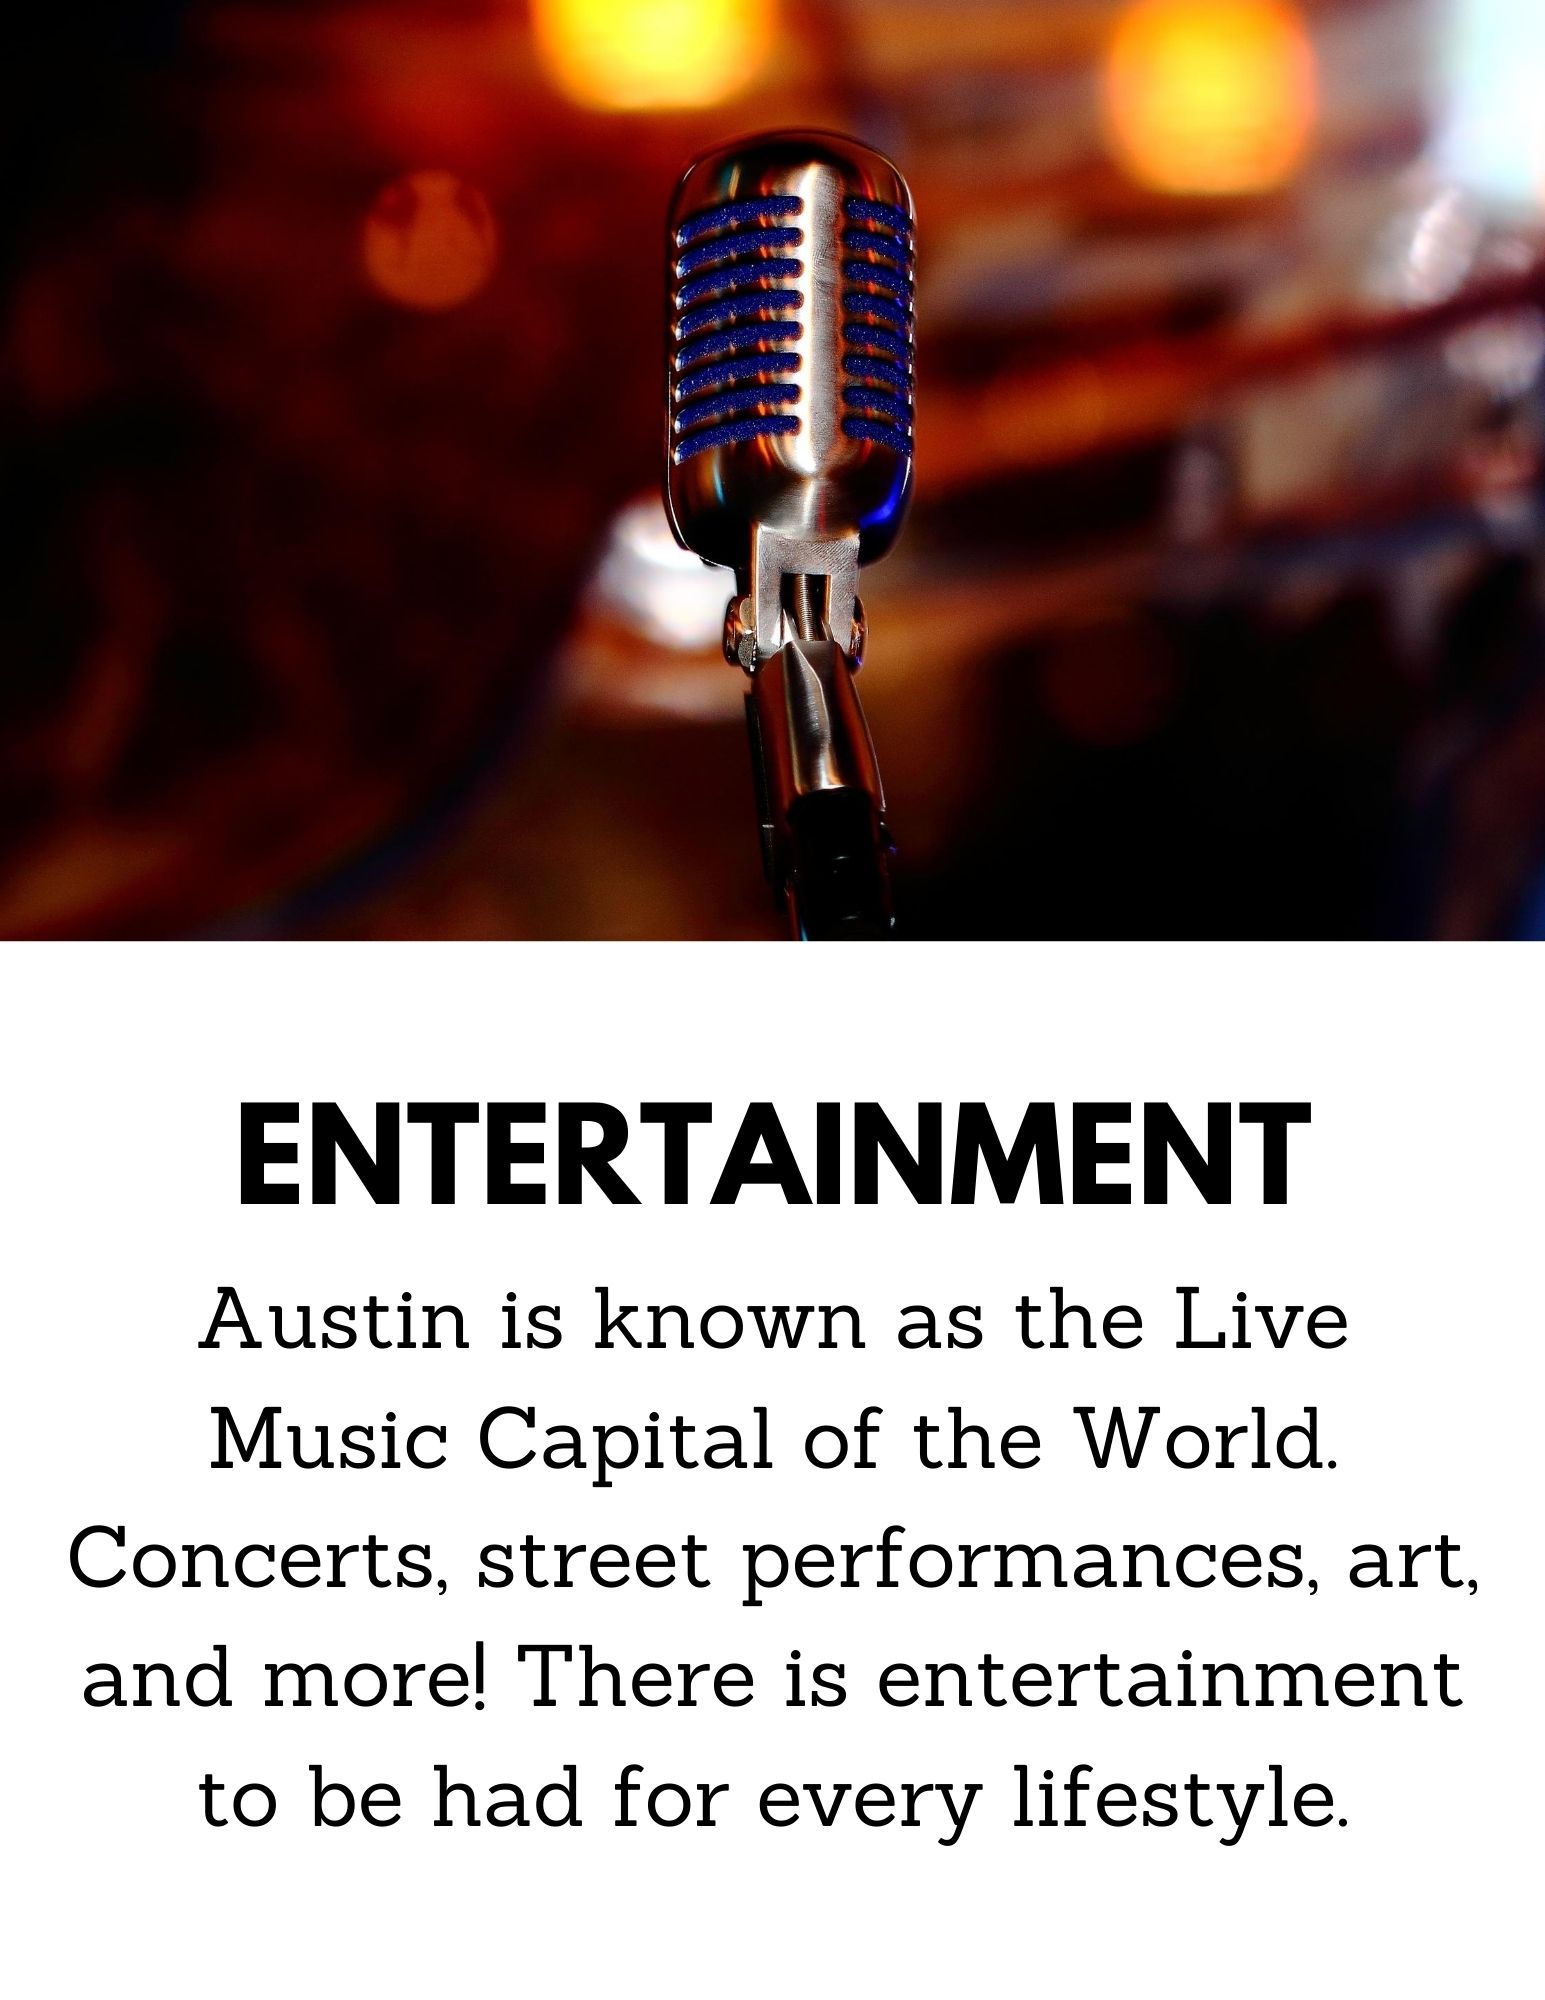 Entertainment Austin is known as the Live Music Capital of the World. Concerts, street performances, art and more! There is entertainment to be had for every lifestyle.